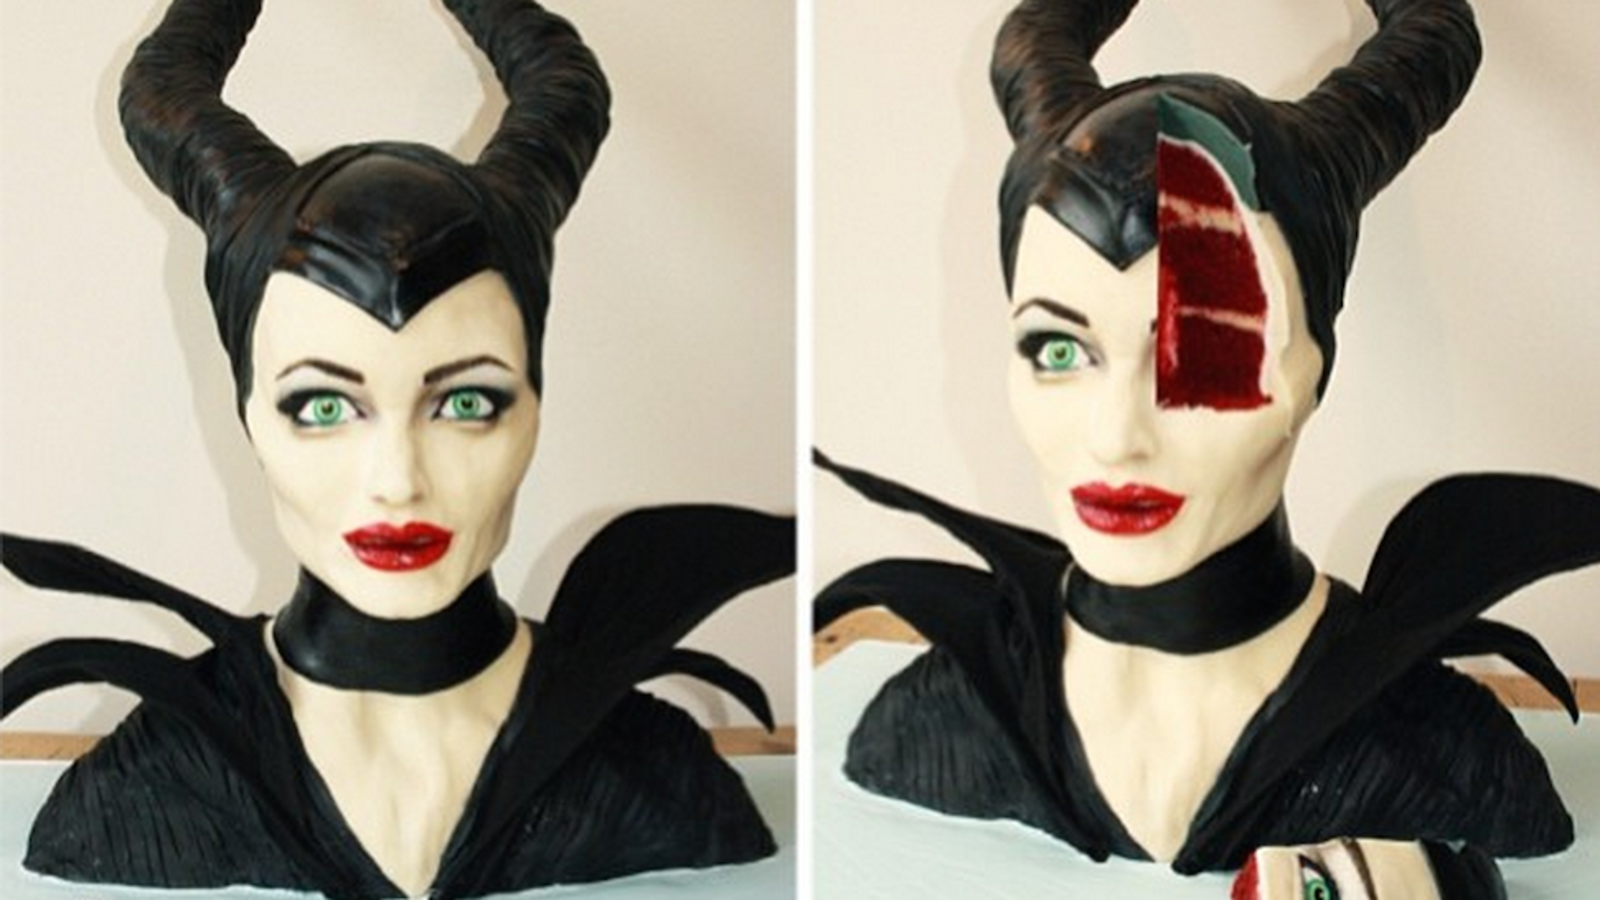 Maleficent Cake Is Crazy Realistic Deeply Unsettling Delicious